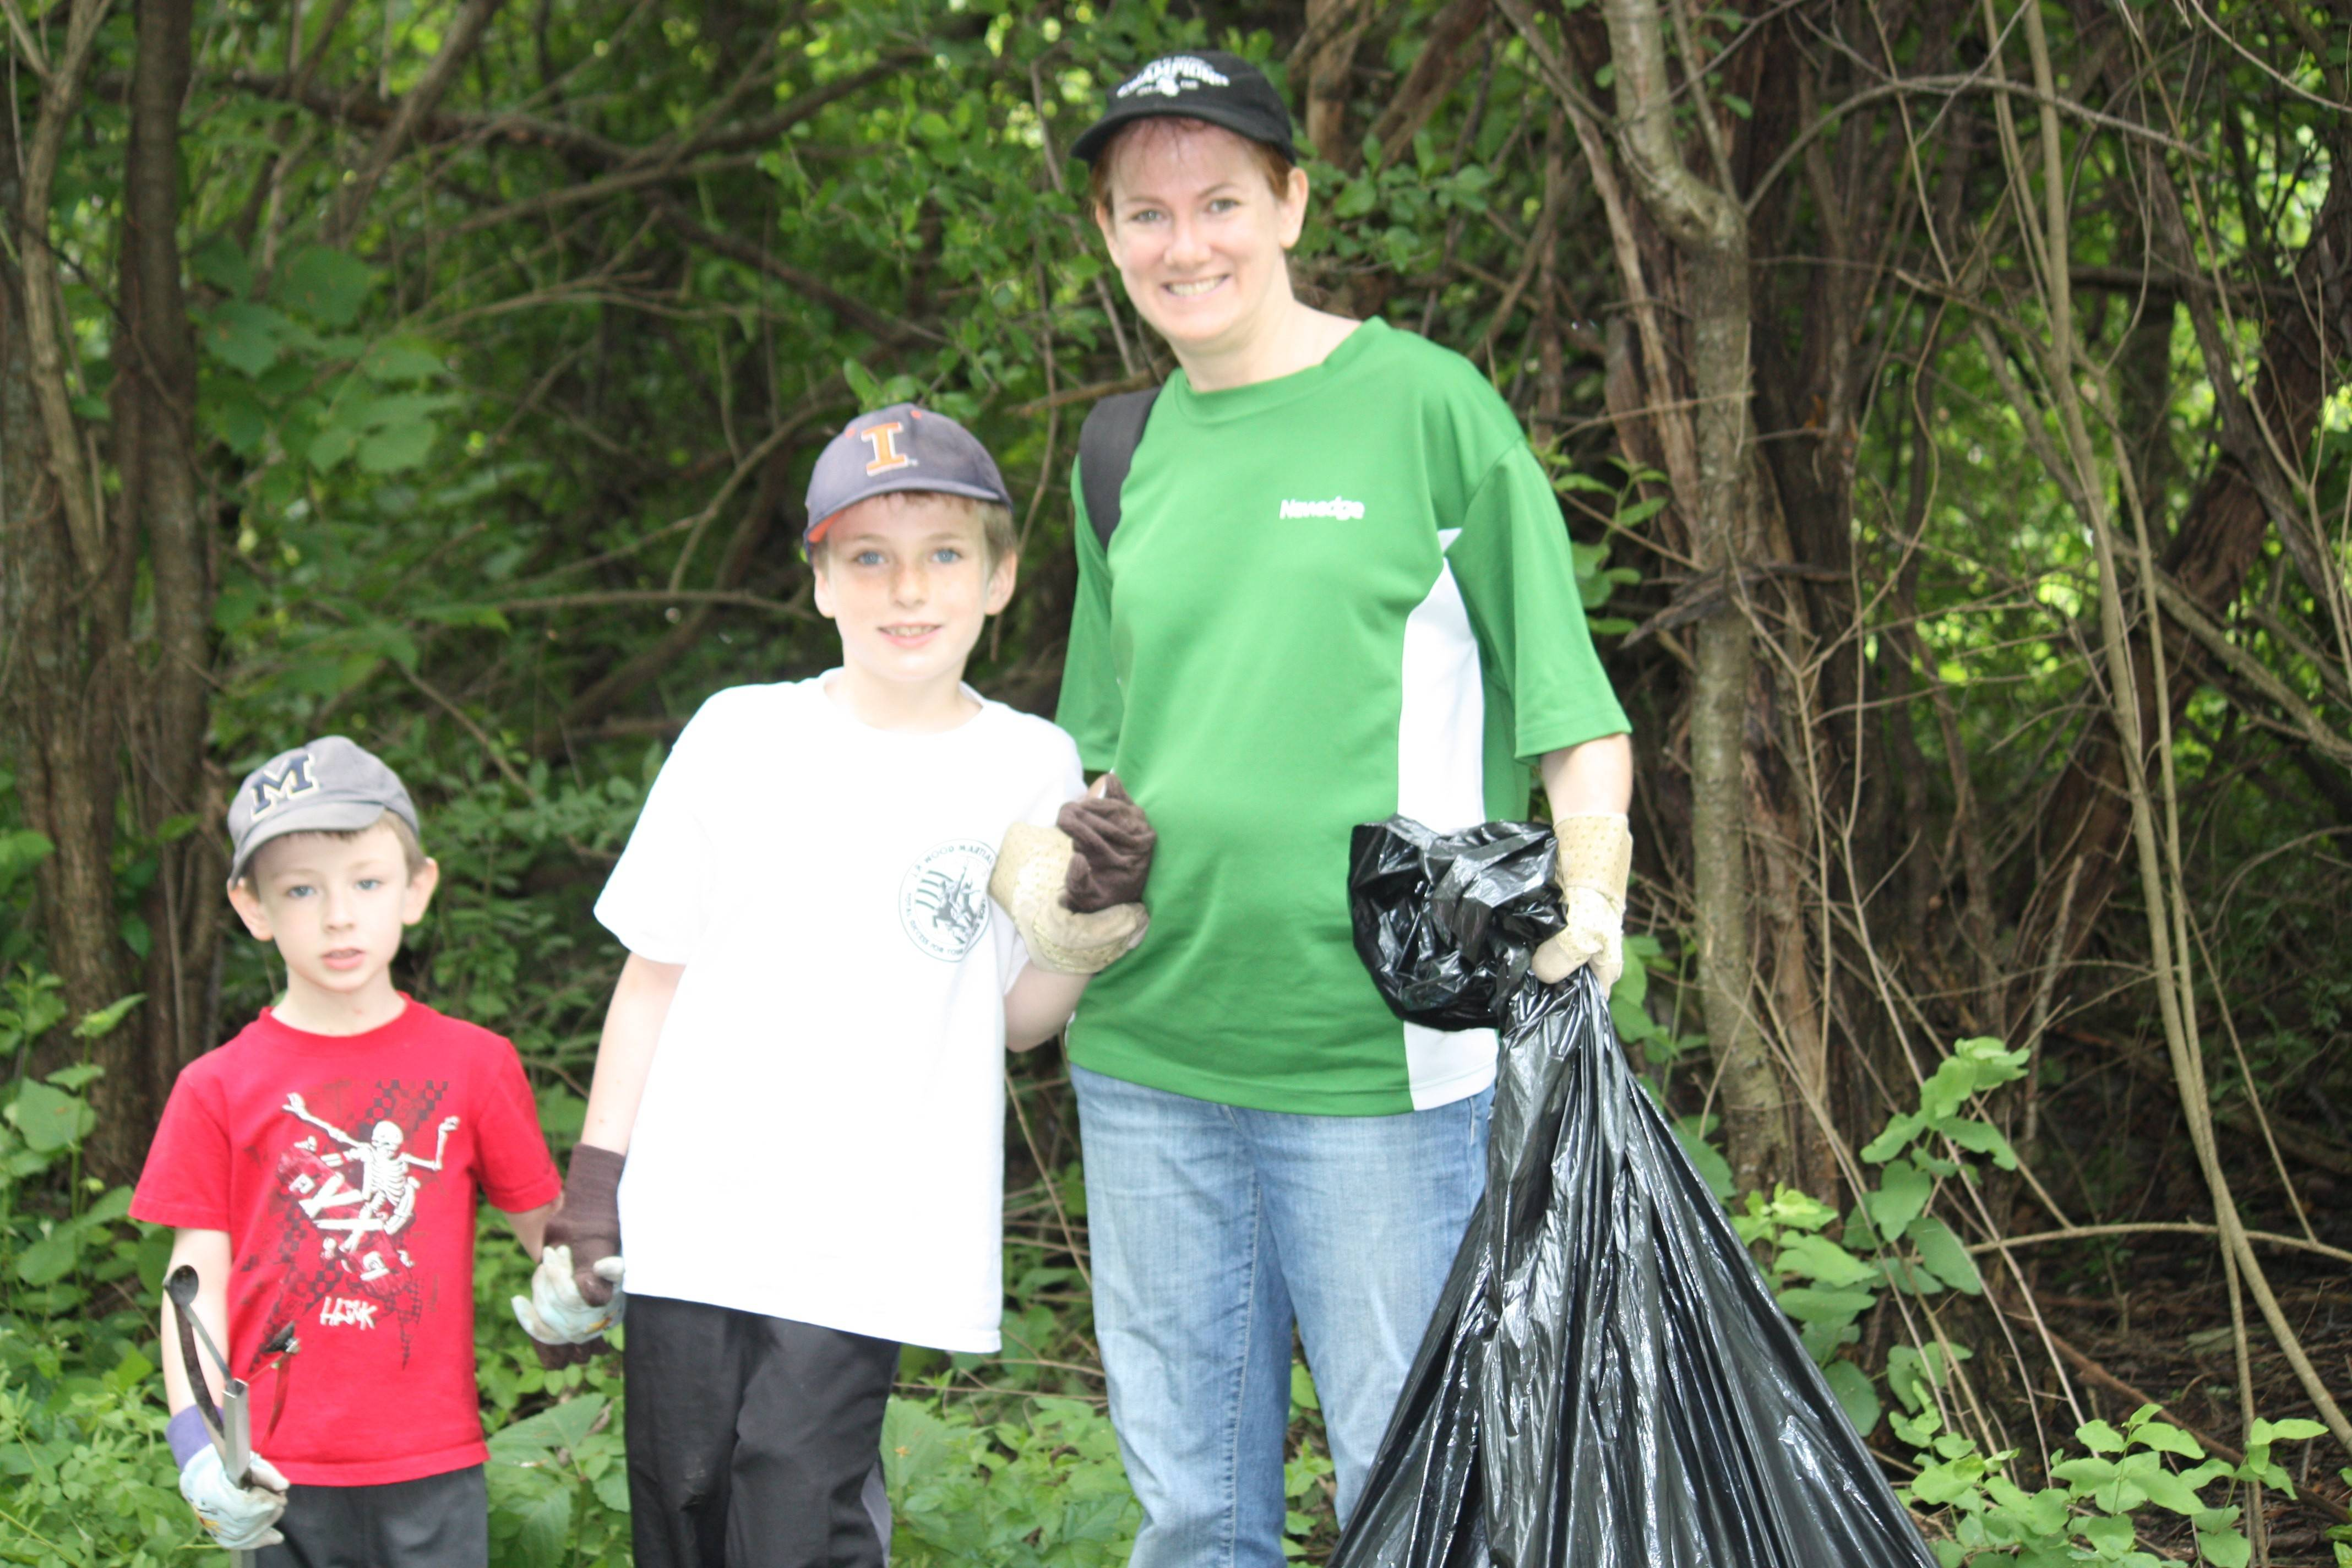 In recognition of National Trails Day, the Palatine Park District Environmental Committee is hosting a community cleanup of the Palatine Trail from 9 a.m. to noon Saturday, June 7.